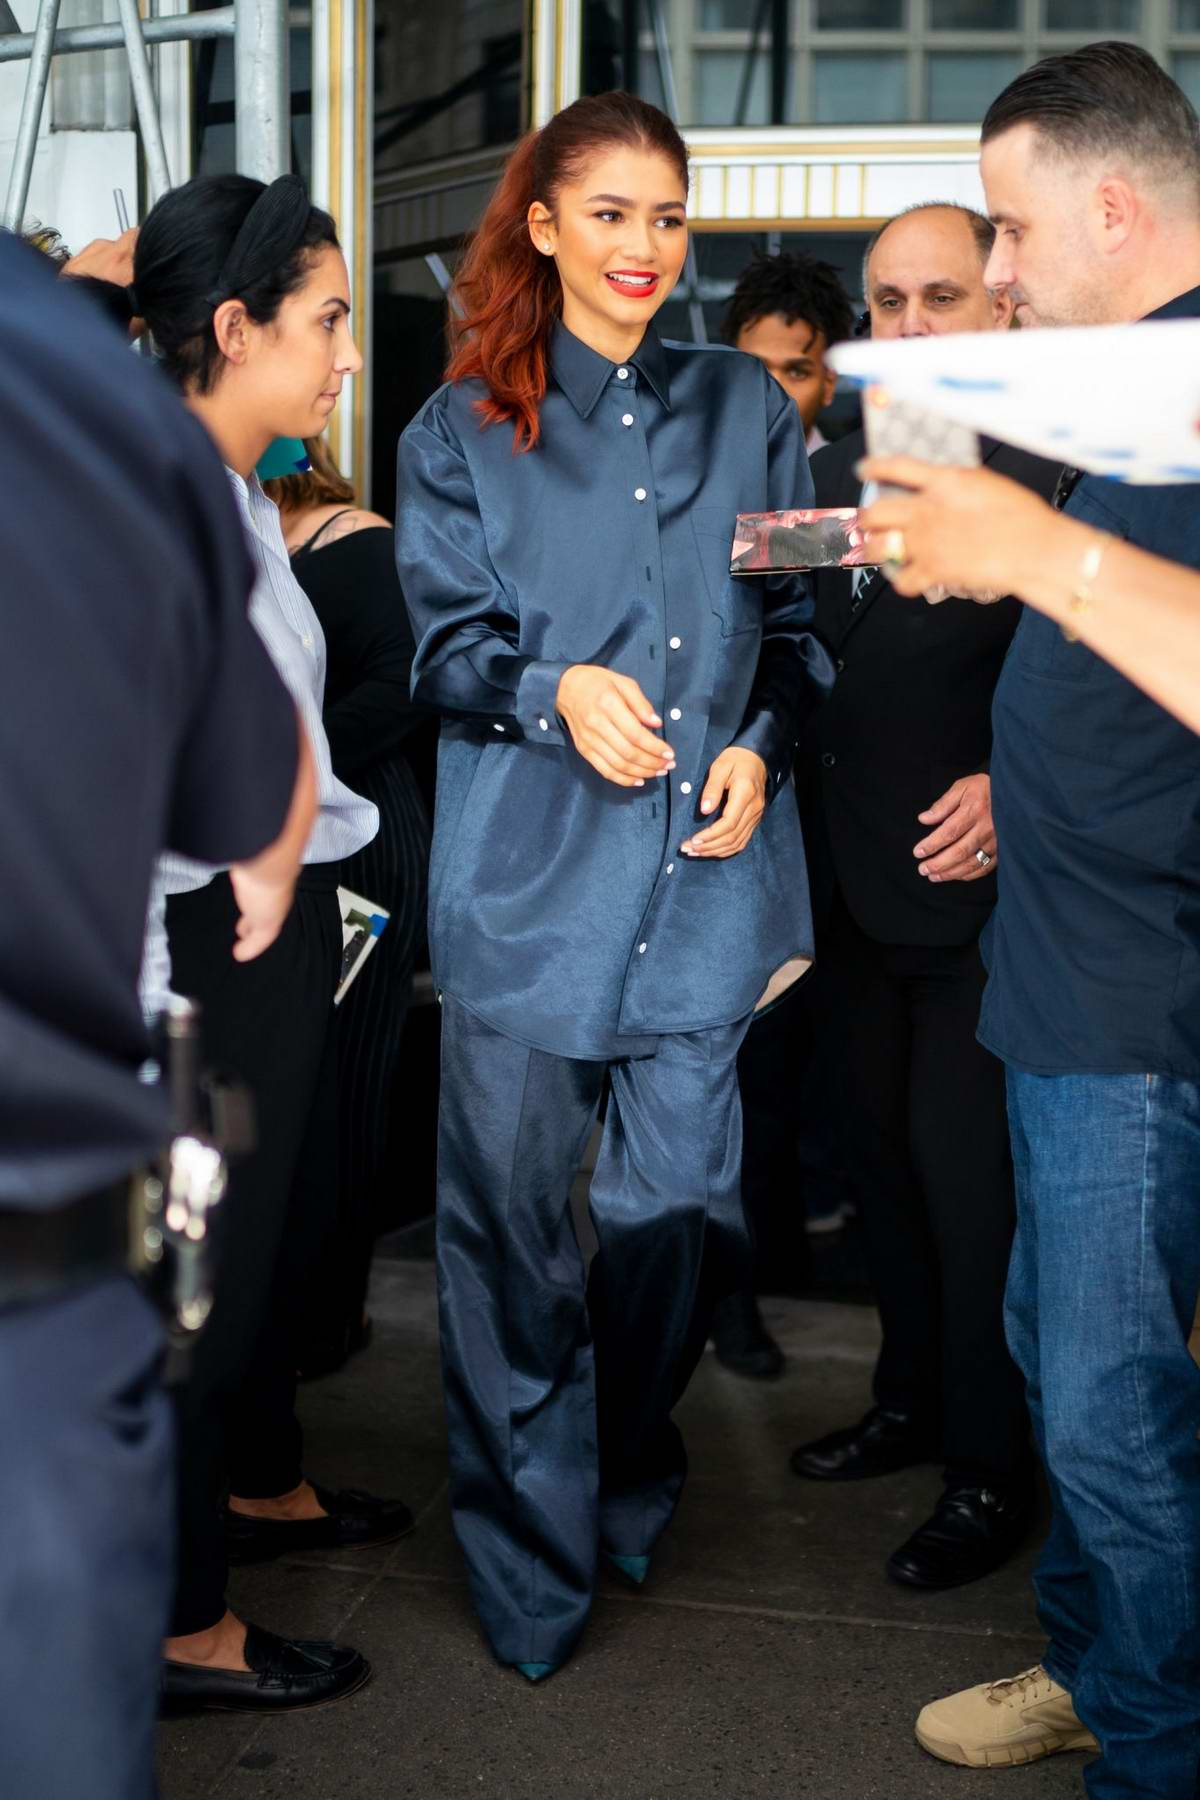 Zendaya greets fans while out in Midtown in New York City